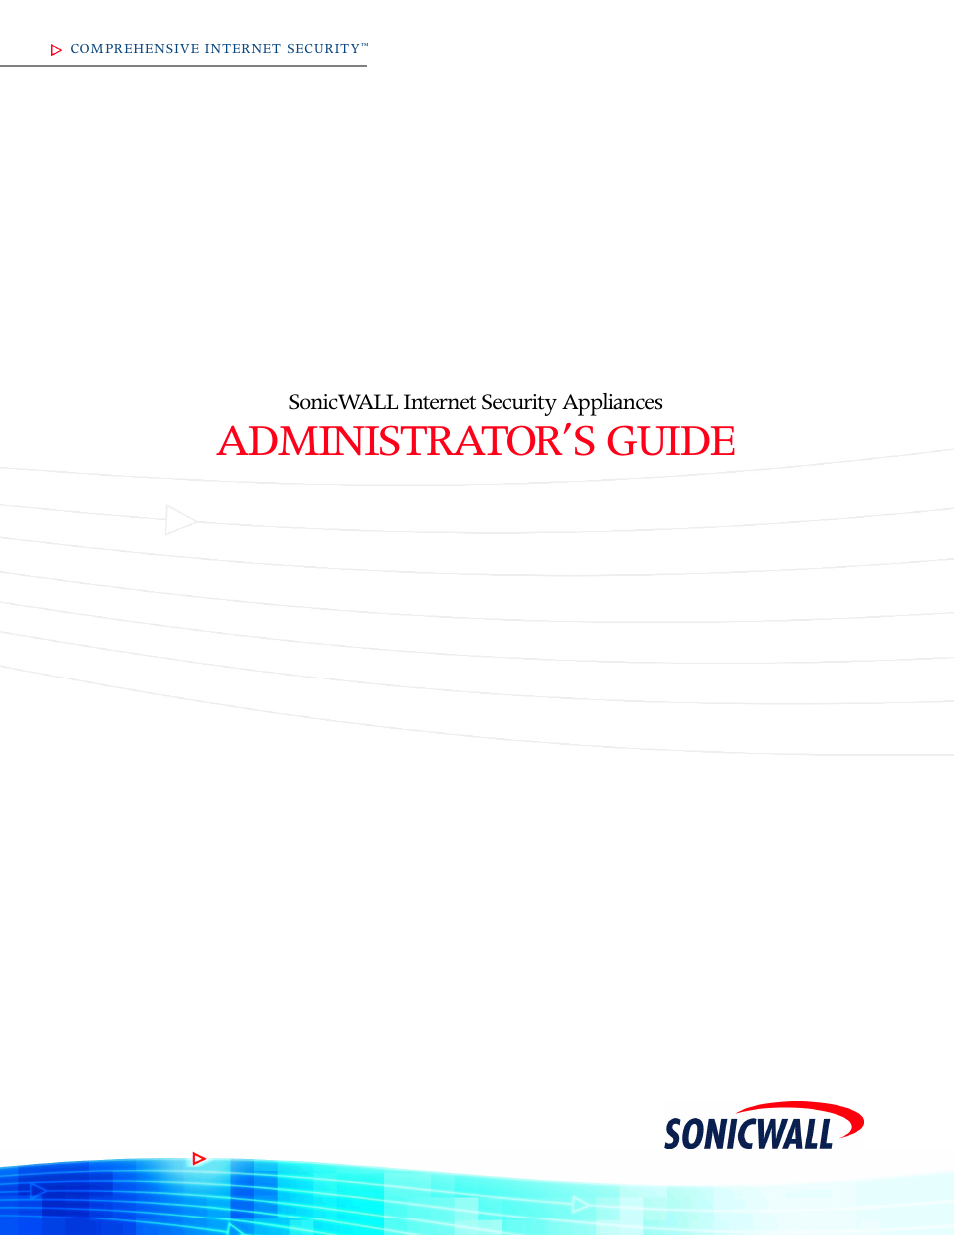 SonicWALL Internet Security Appliances User Manual   293 pages